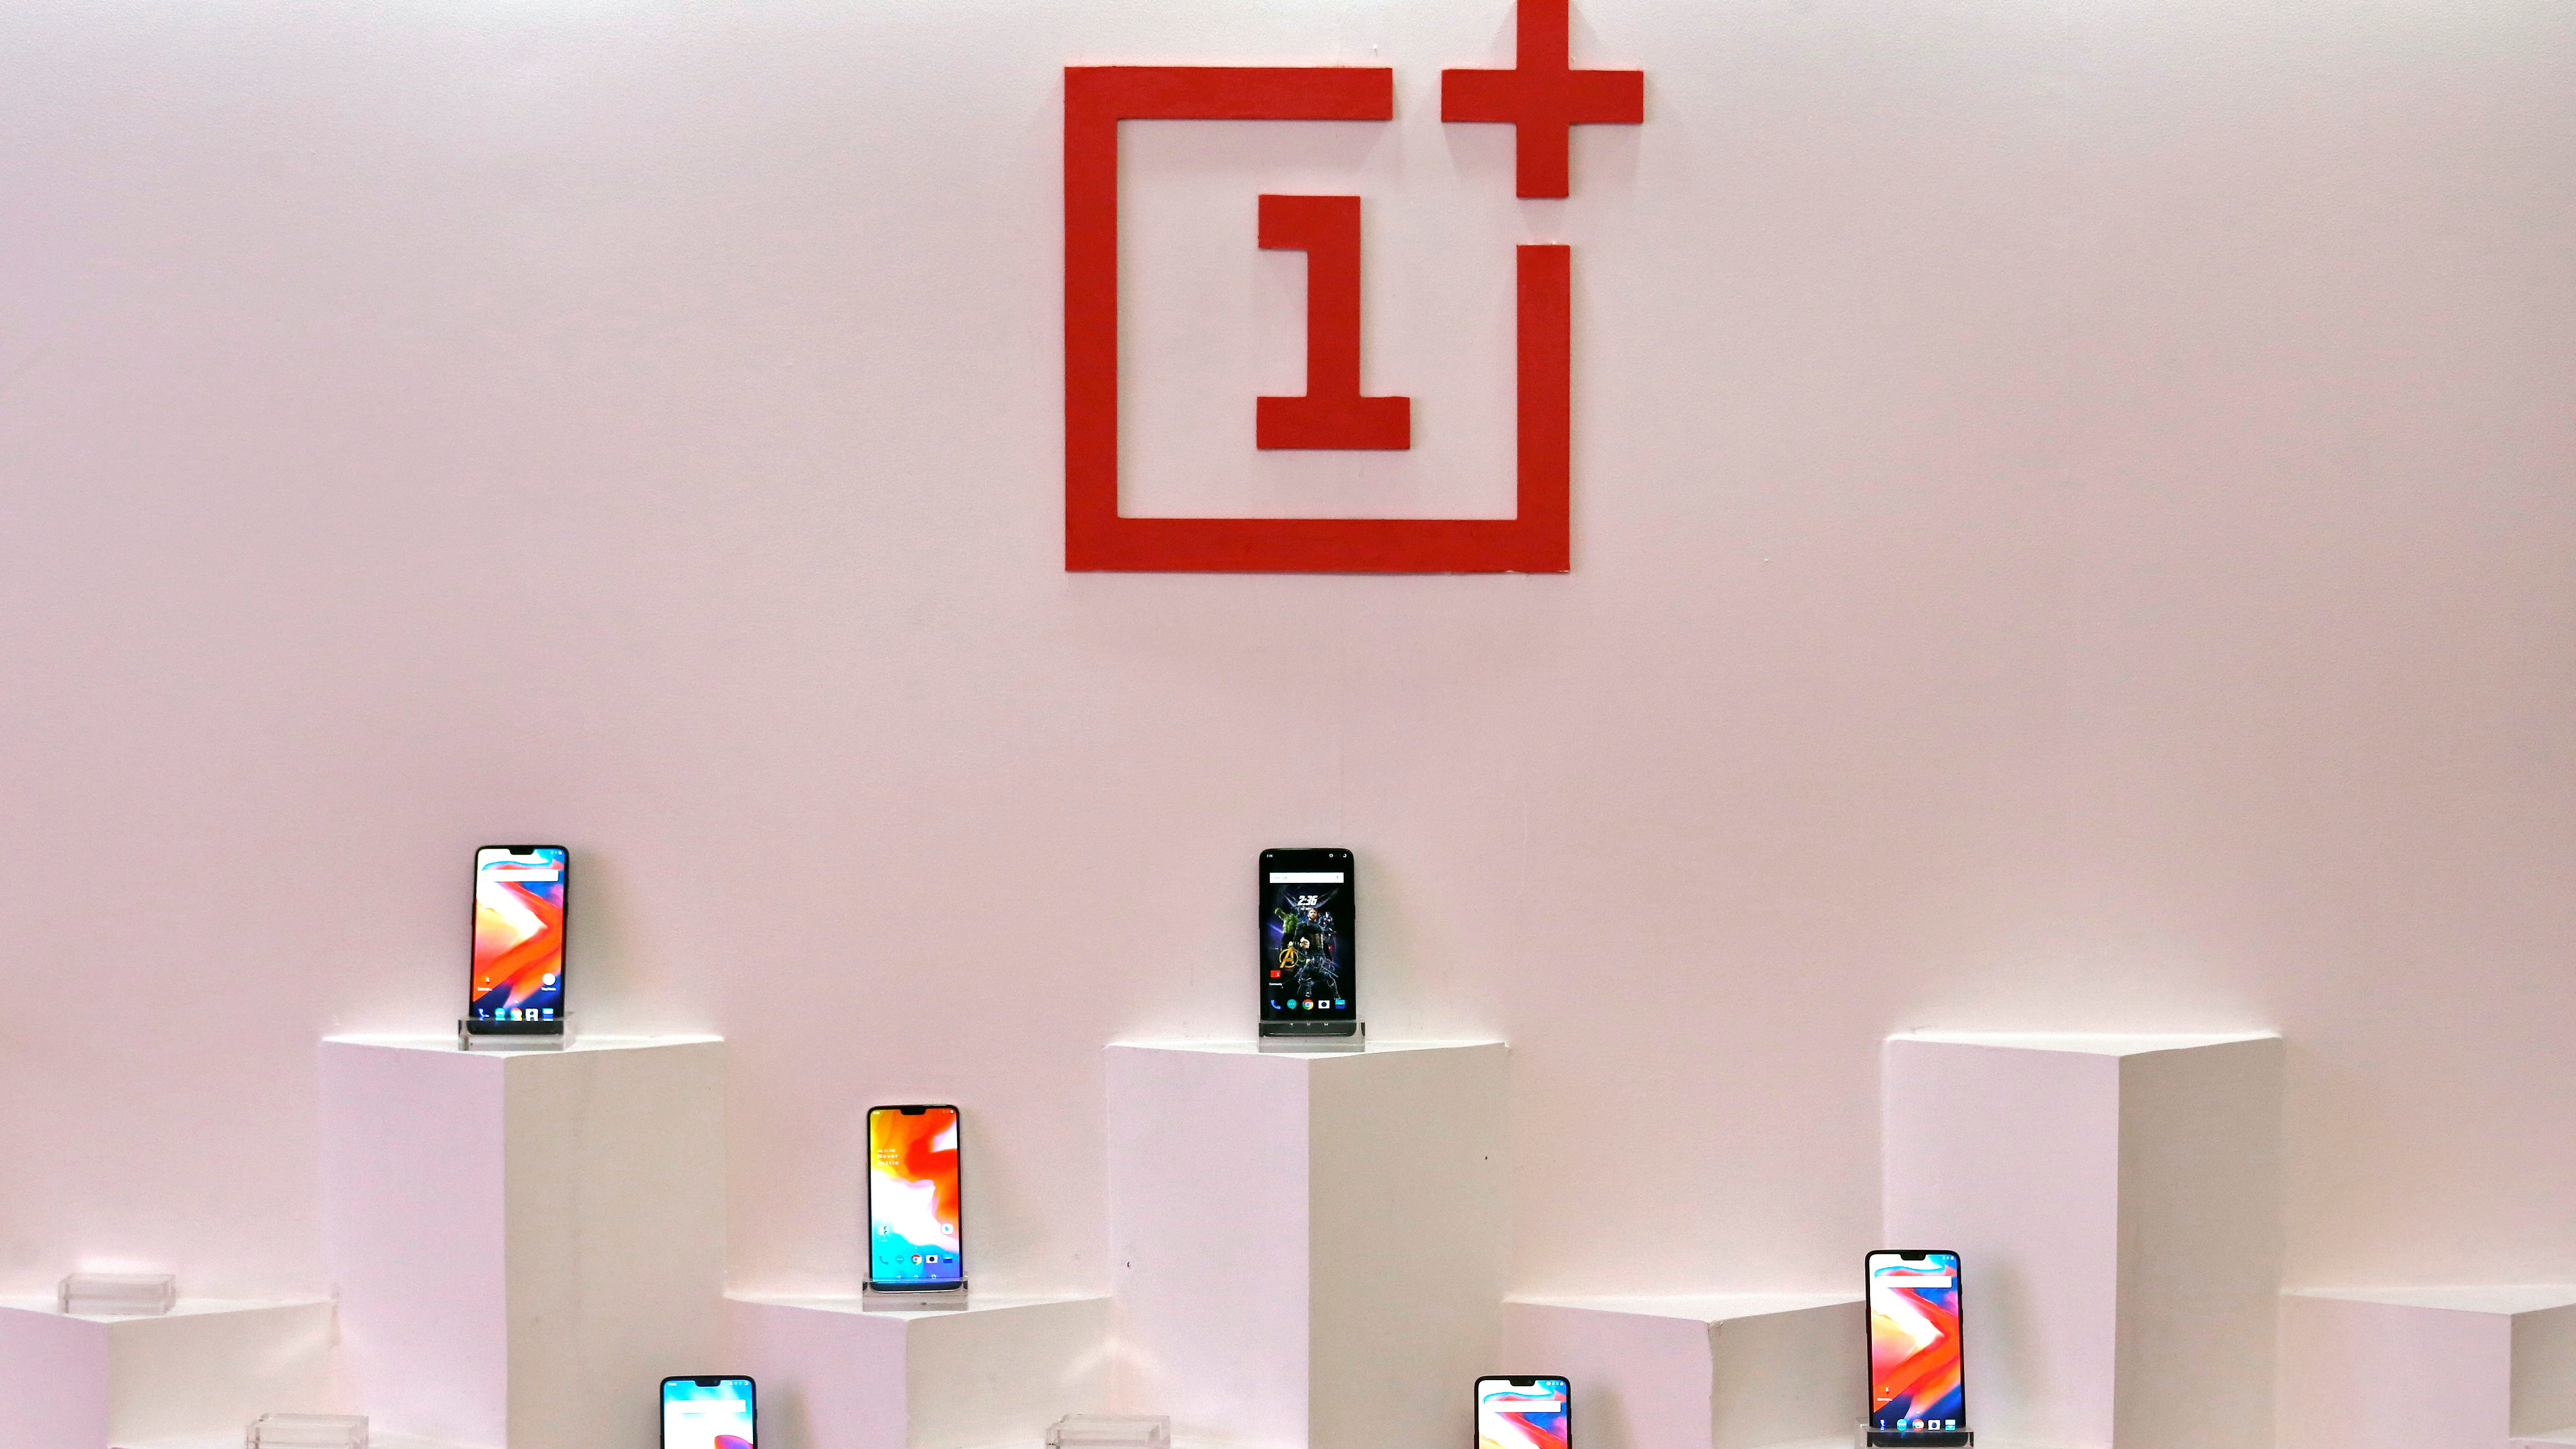 OnePlus mobile phones are seen on display during a press briefing in Mumbai